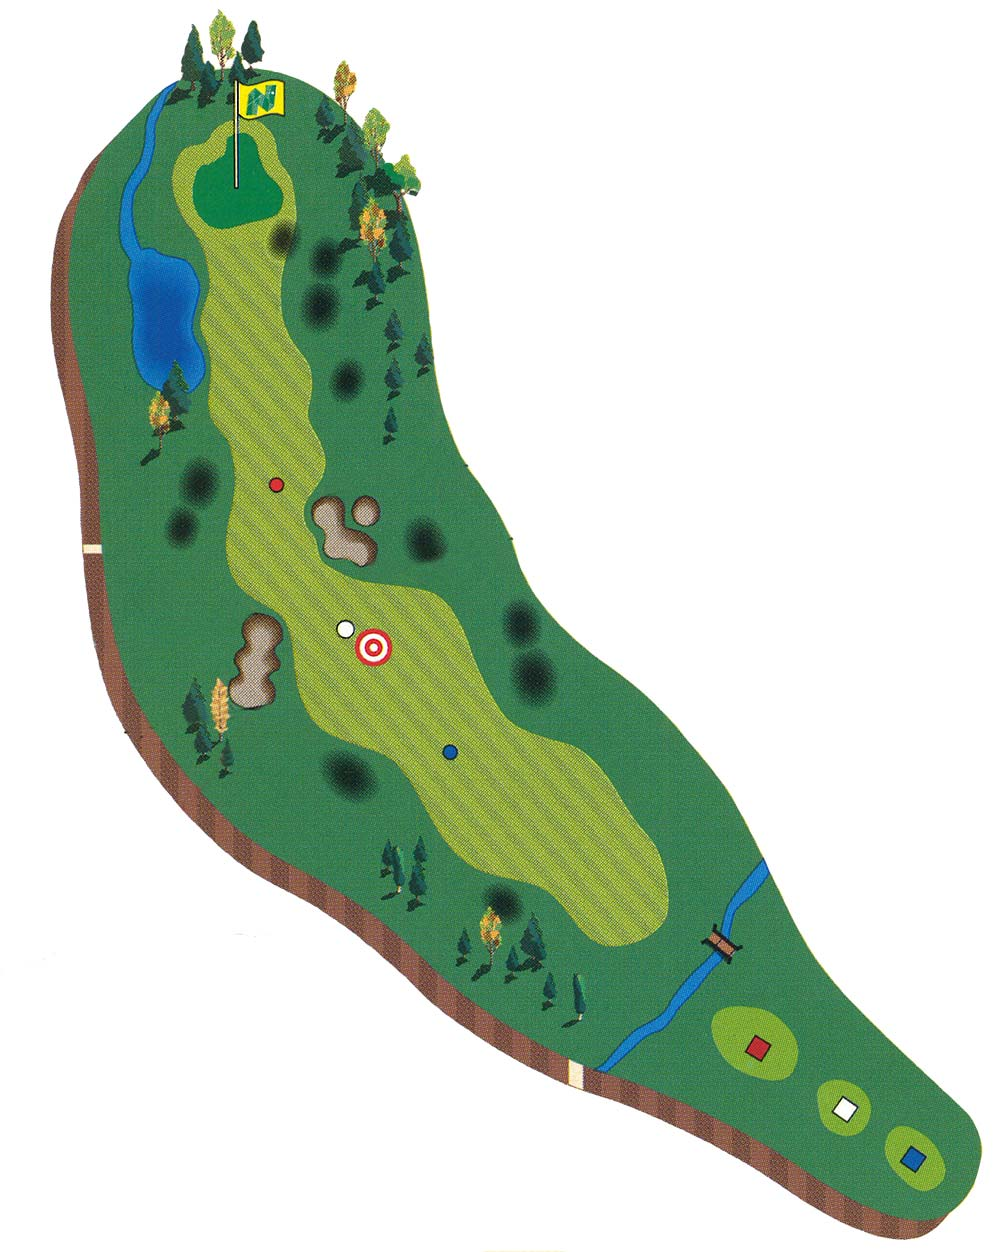 Course Description - Hole 3